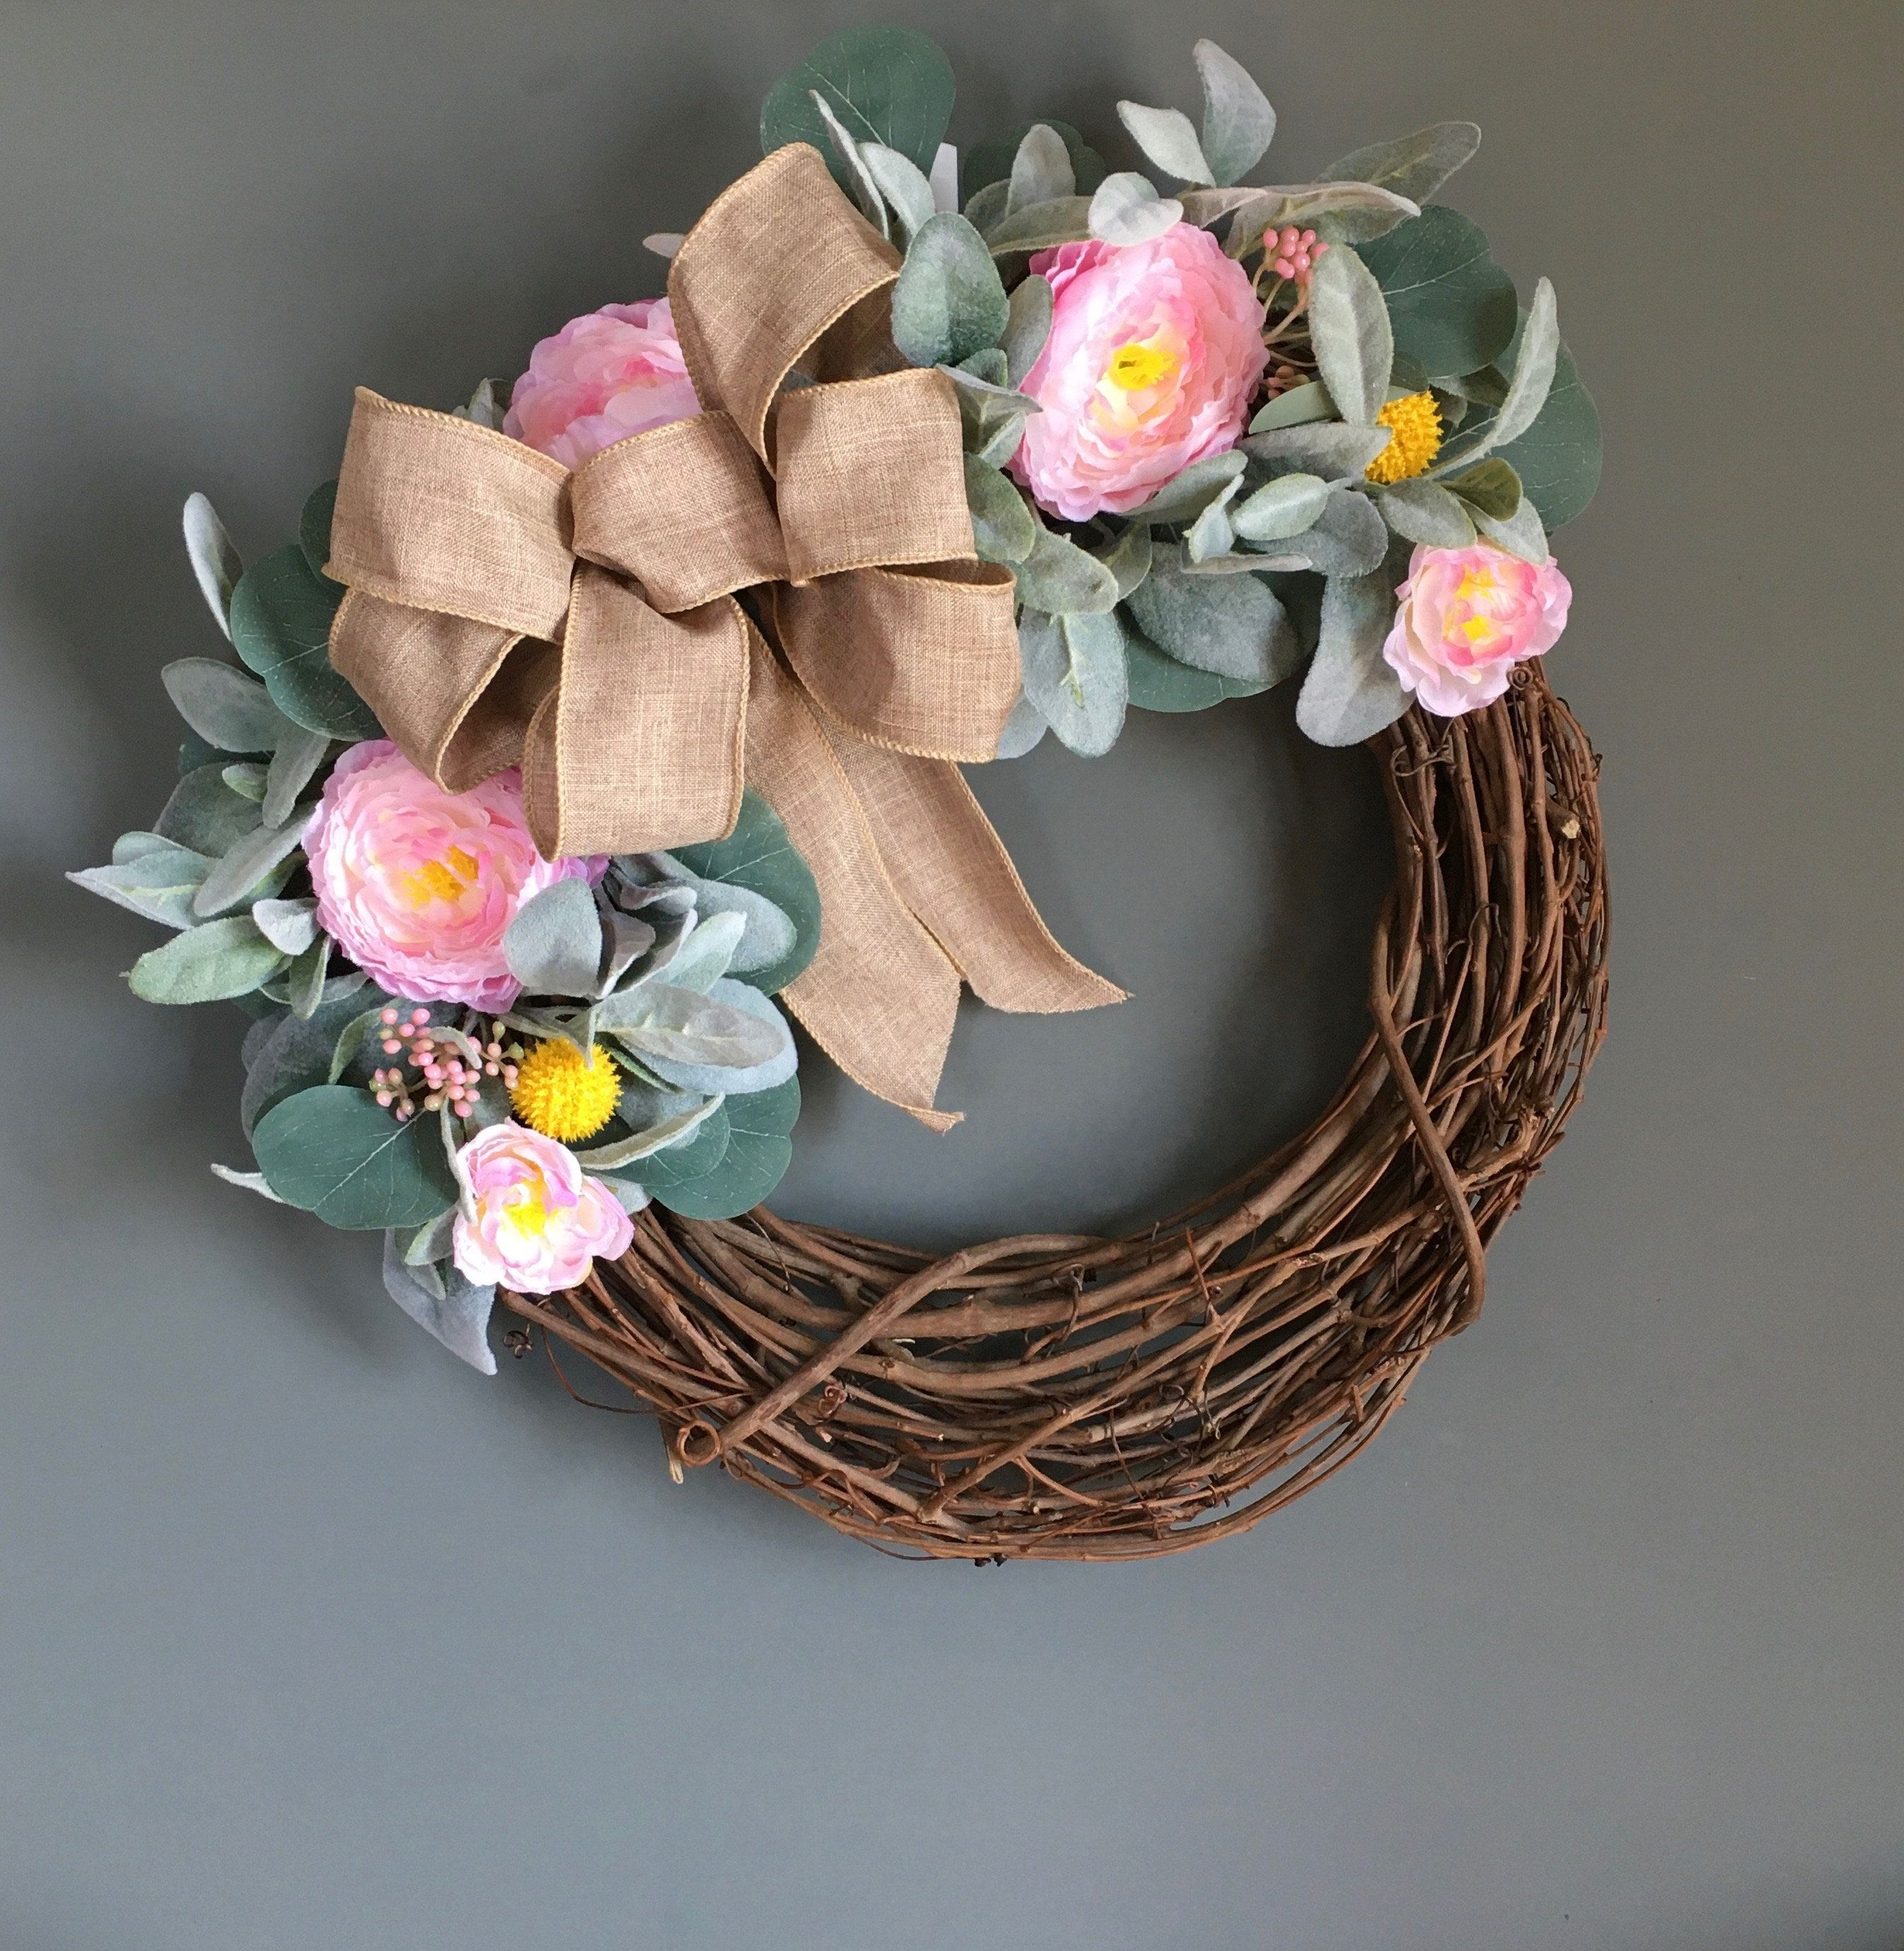 Photo of Spring lamb earrings, spring front door wreath, ranunculus wreath, grapevine wreath for spring, spring door wreath, housewarming gift